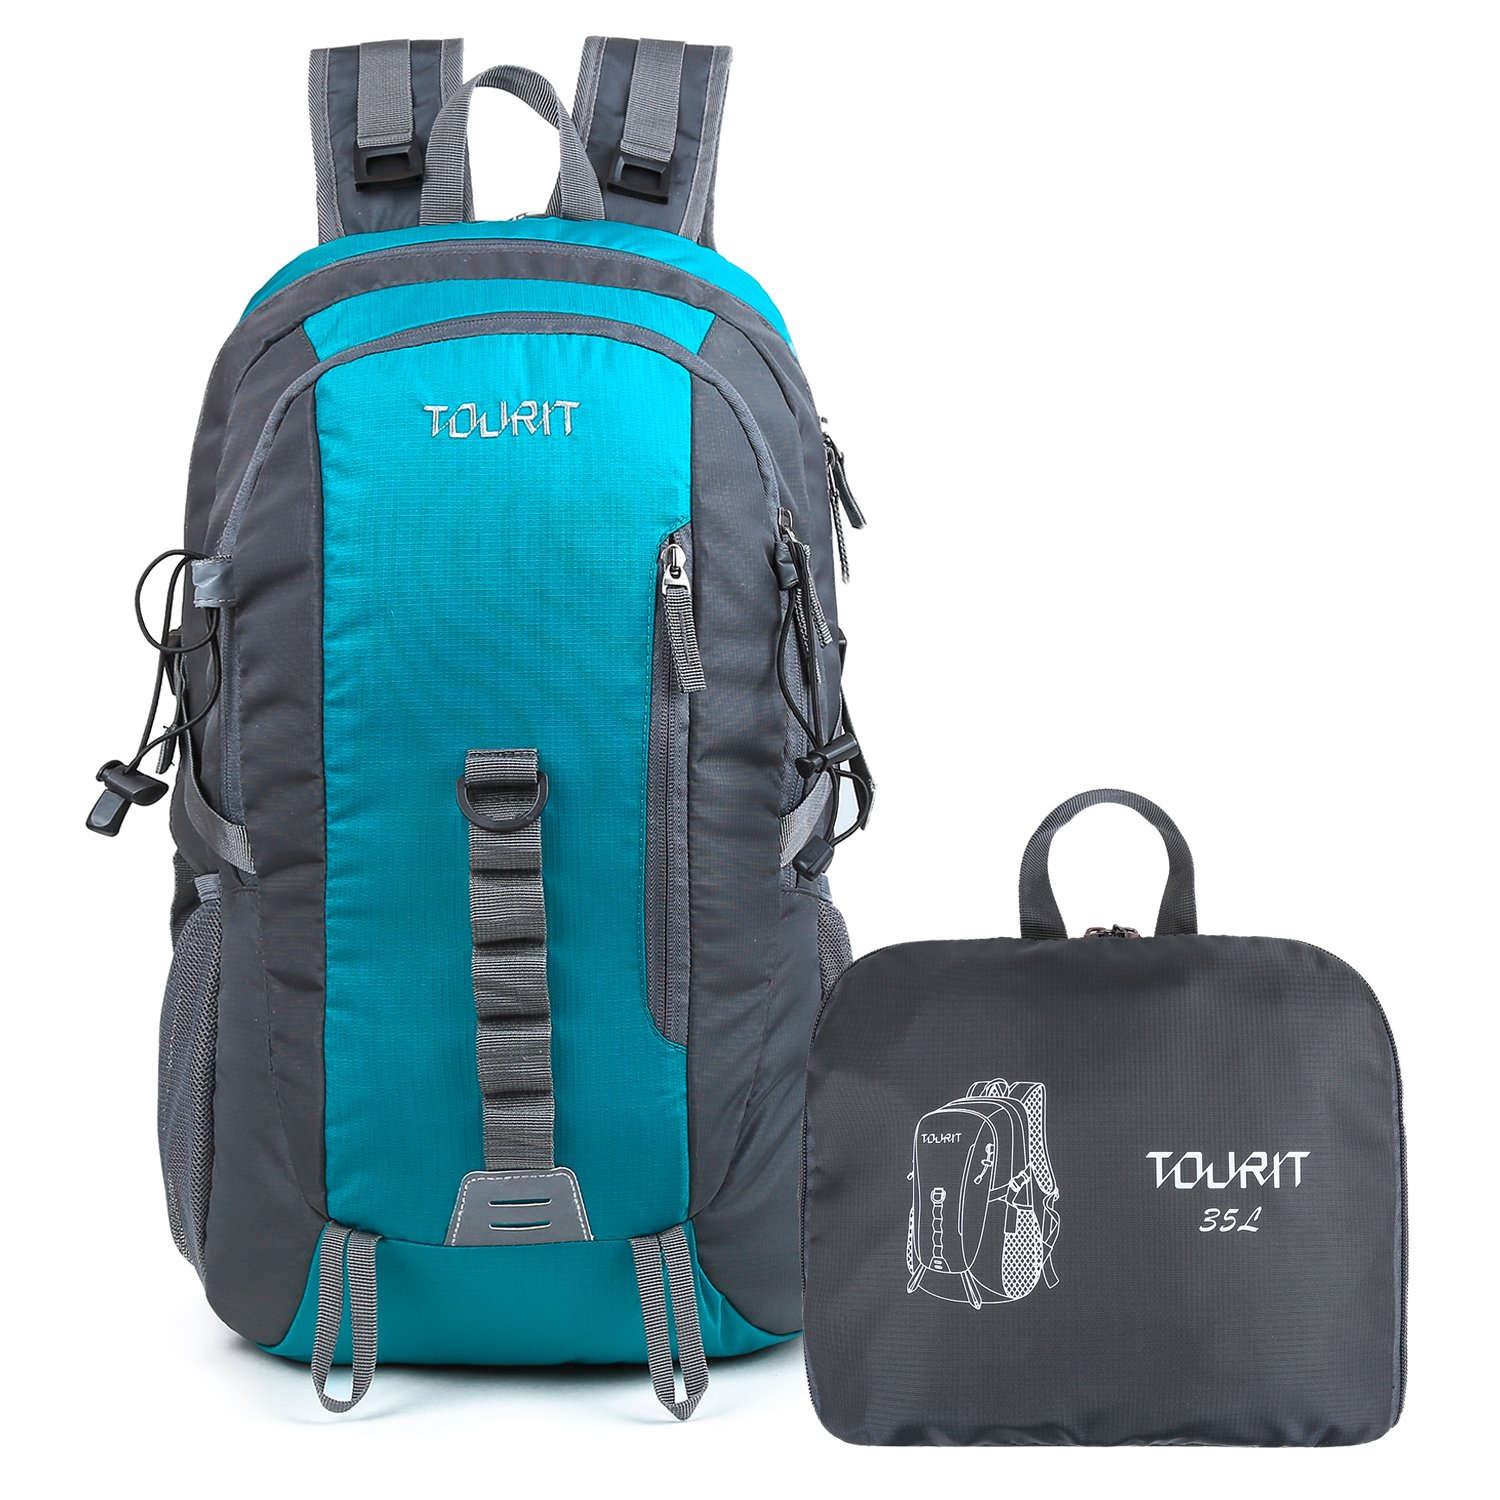 TOURIT Lightweight Travel Hiking Backpack Packable Foldable Daypack Waterproof Back Packs for Hiking, Large Capacity 35L for Men Women Boys Girls to Picnics, Sport, Outdoor